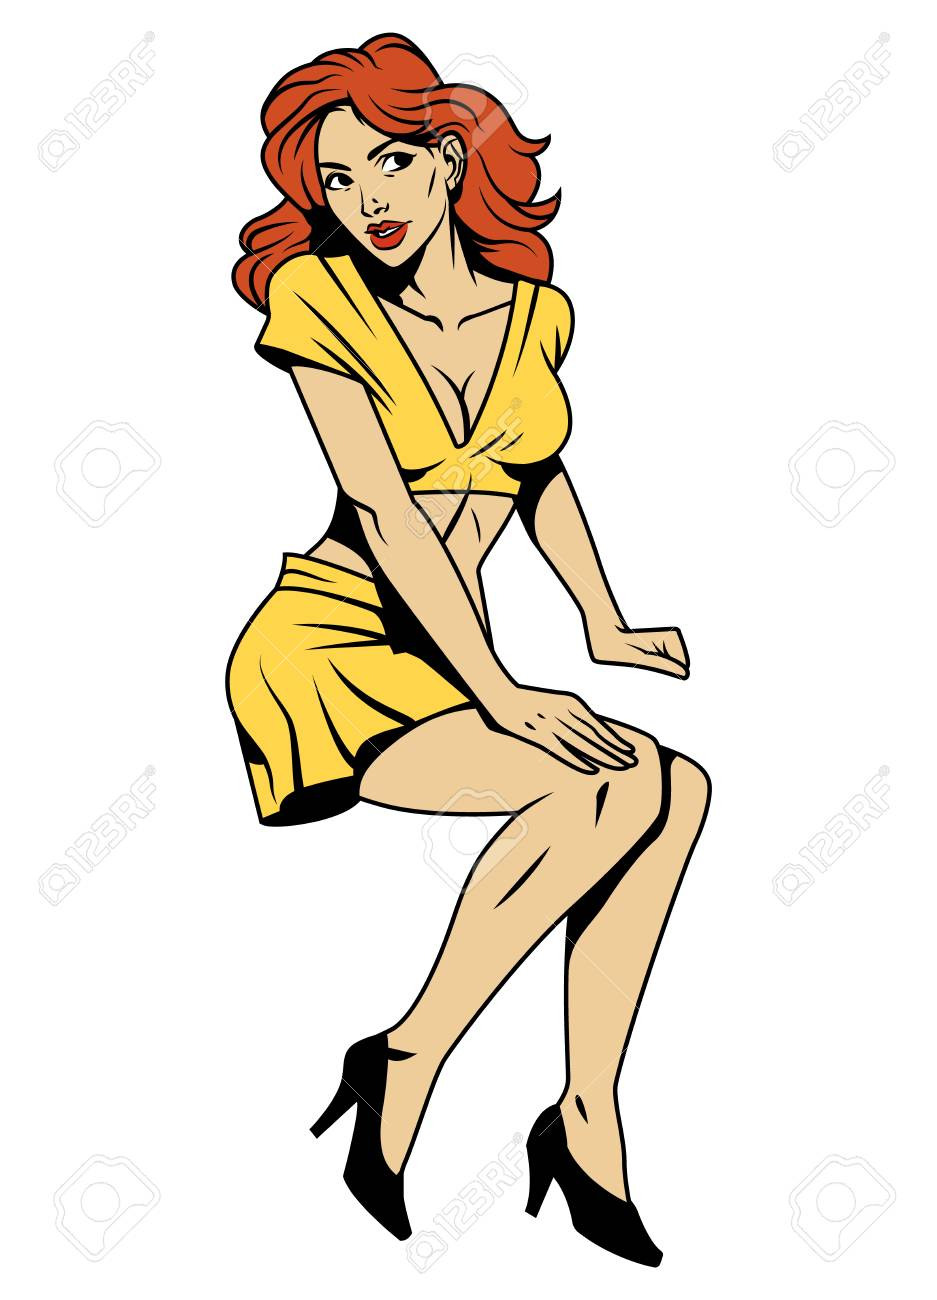 Vintage attractive pin up girl with red hair wearing yellow blouse skirt and black shoes isolated vector illustration - 108644062